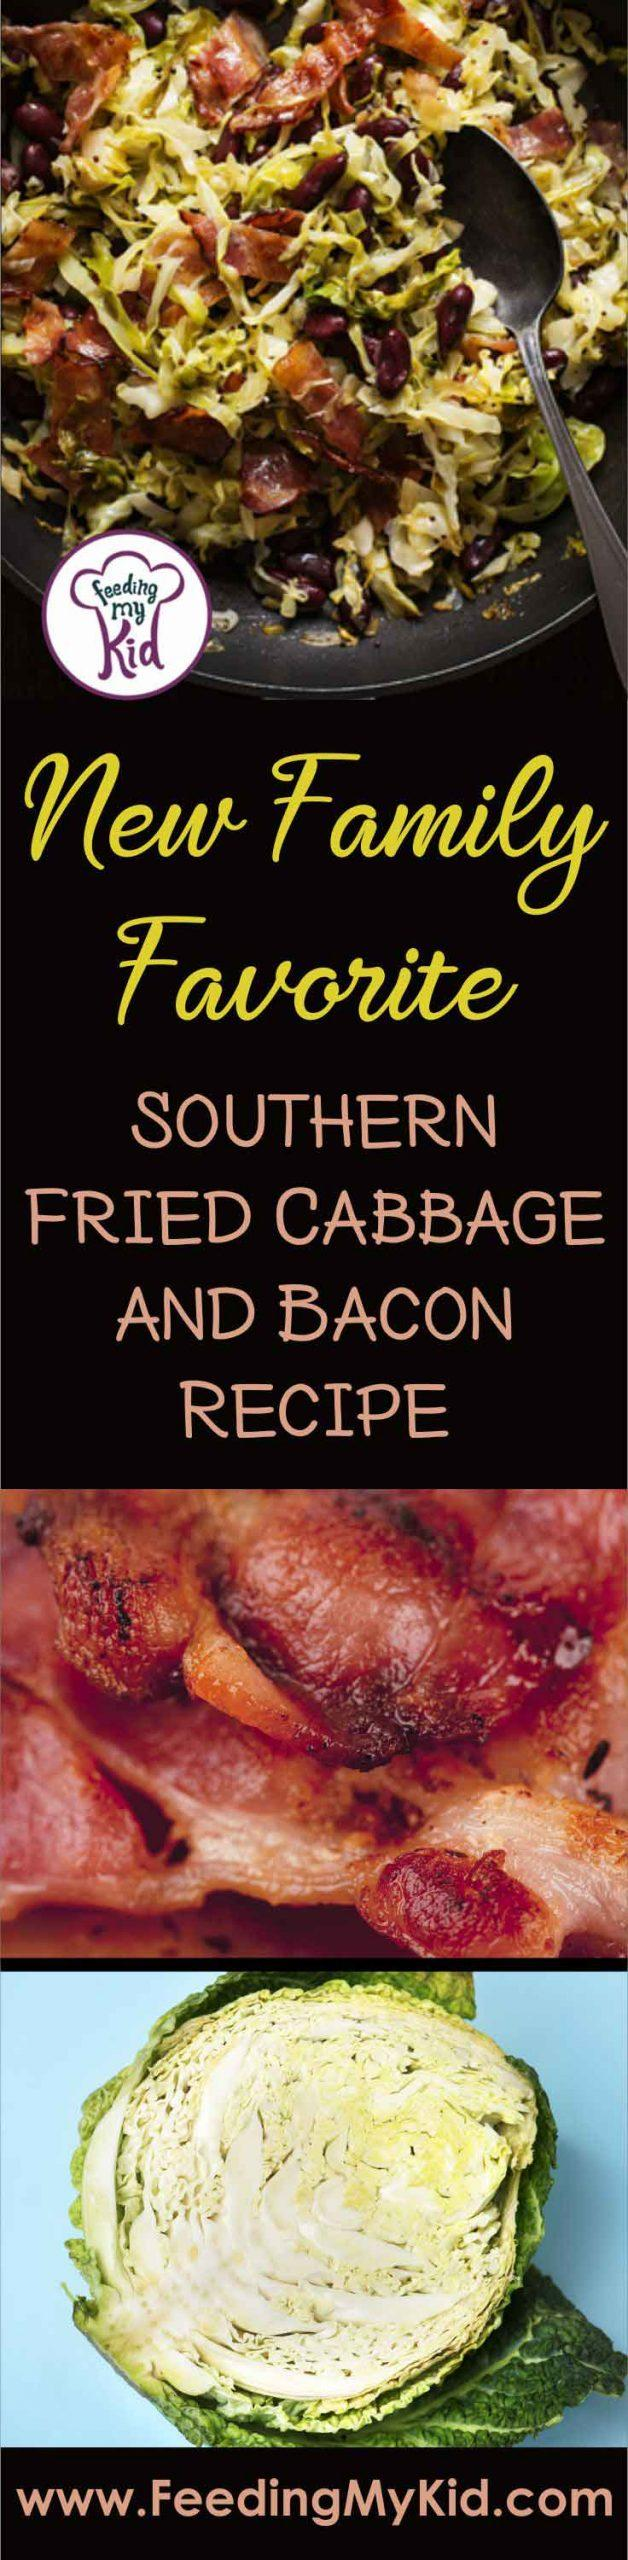 Simmer up this southern classic, the famous fried cabbage recipes! Healthy and hearty, this one-pot meal is one of the best fried cabbage recipes out there!